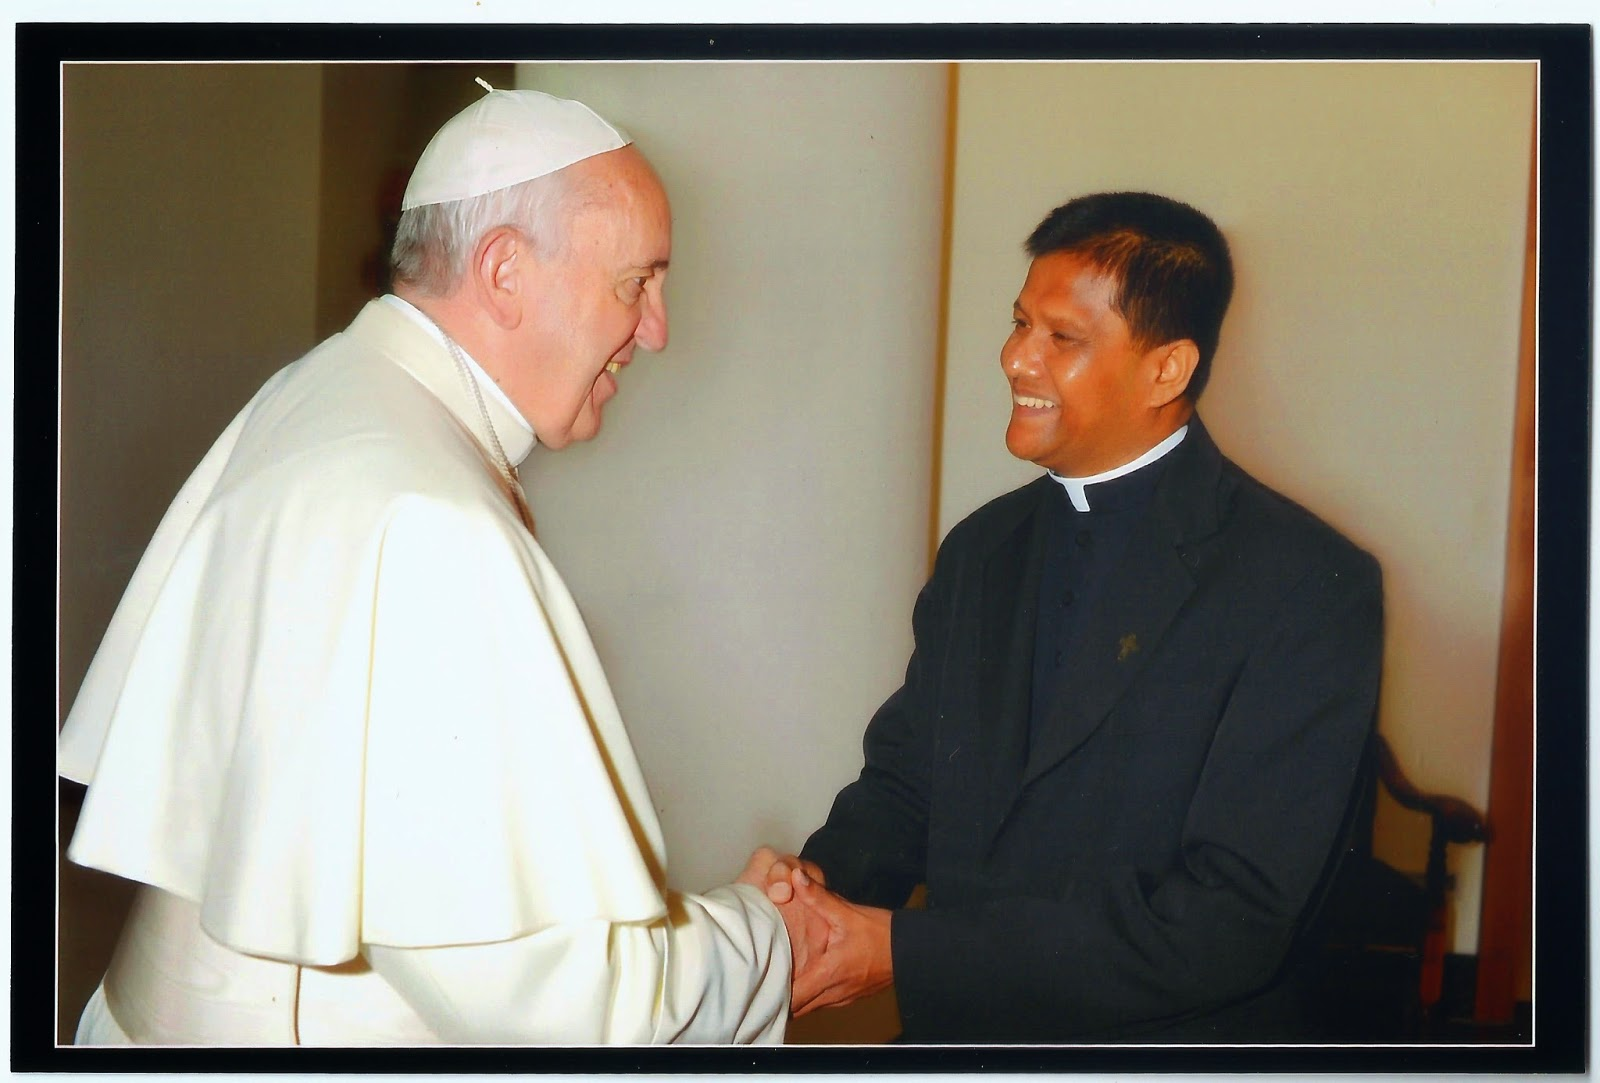 Prayerful Greetings From His Holiness To All The Seminarians And Sri